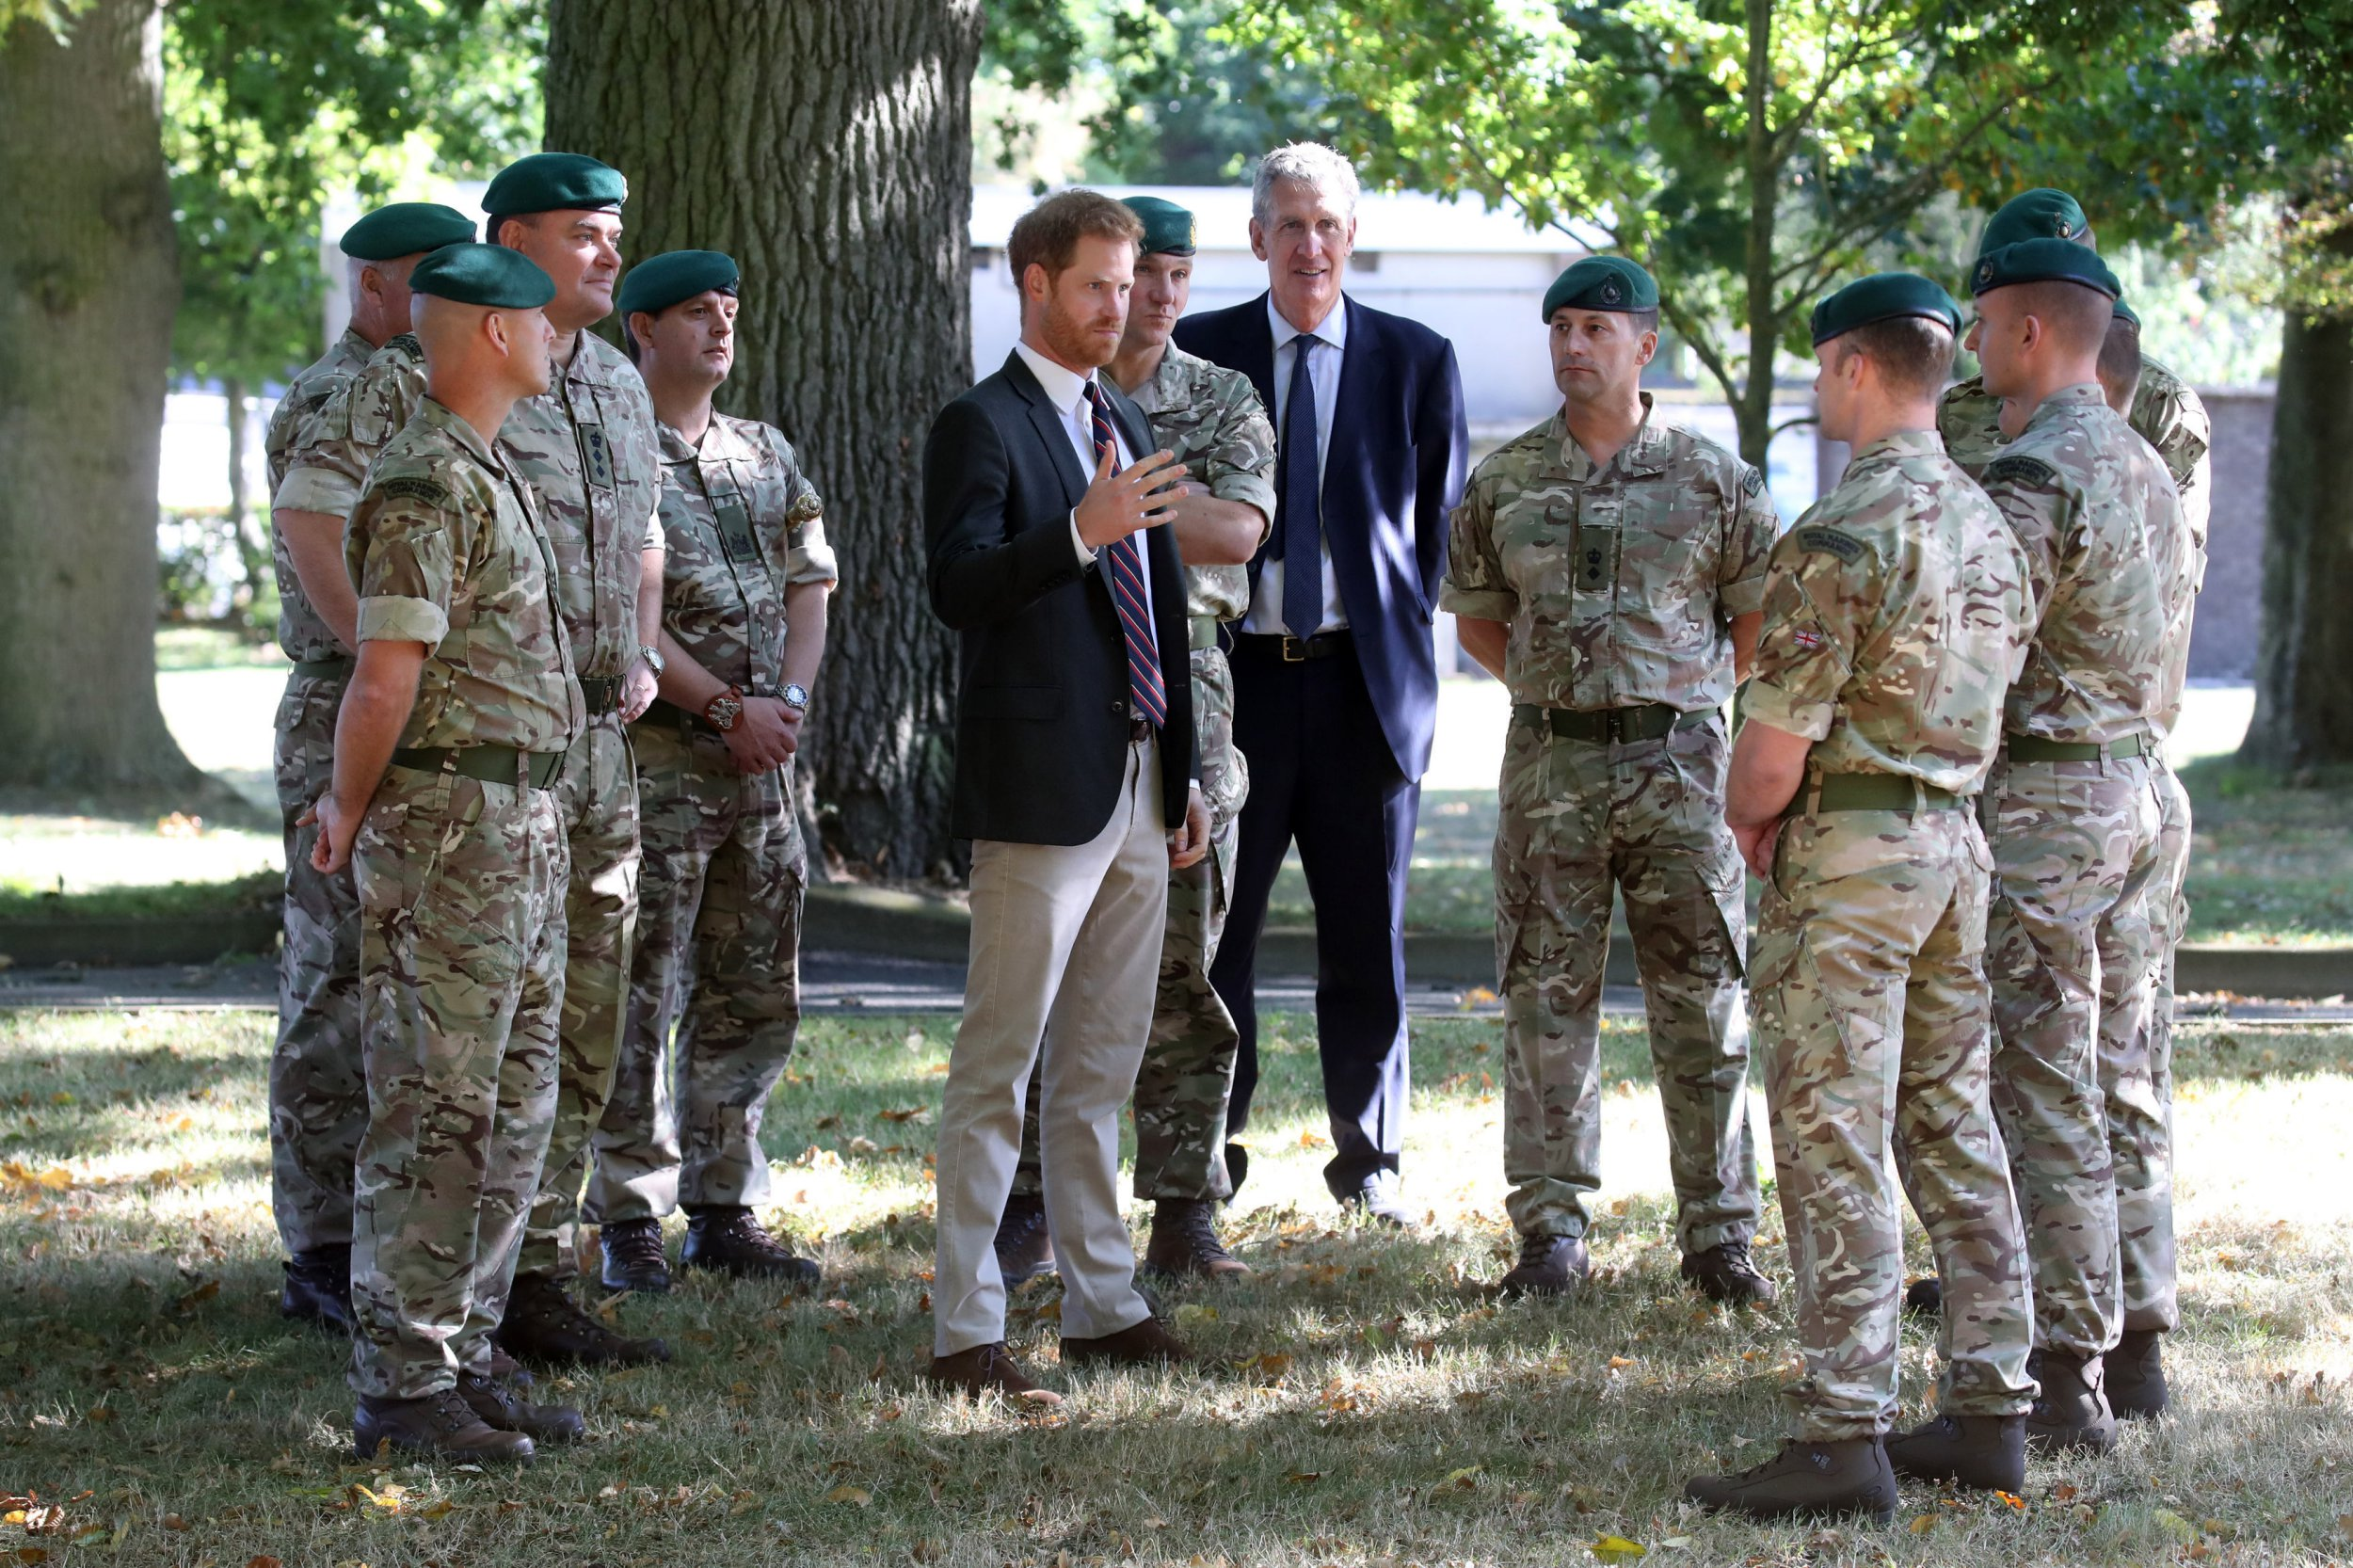 The Duke of Sussex meets commandos as he visits during a visit to the Royal Marines Commando Training Centre in Lympstone, Devon. PRESS ASSOCIATION Photo. Picture date: Thursday September 13, 2018. The duke became Captain General Royal Marines in December last year, succeeding his grandfather Philip who was Captain General for 64 years. See PA story ROYAL Harry. Photo credit should read: Chris Jackson/PA Wire